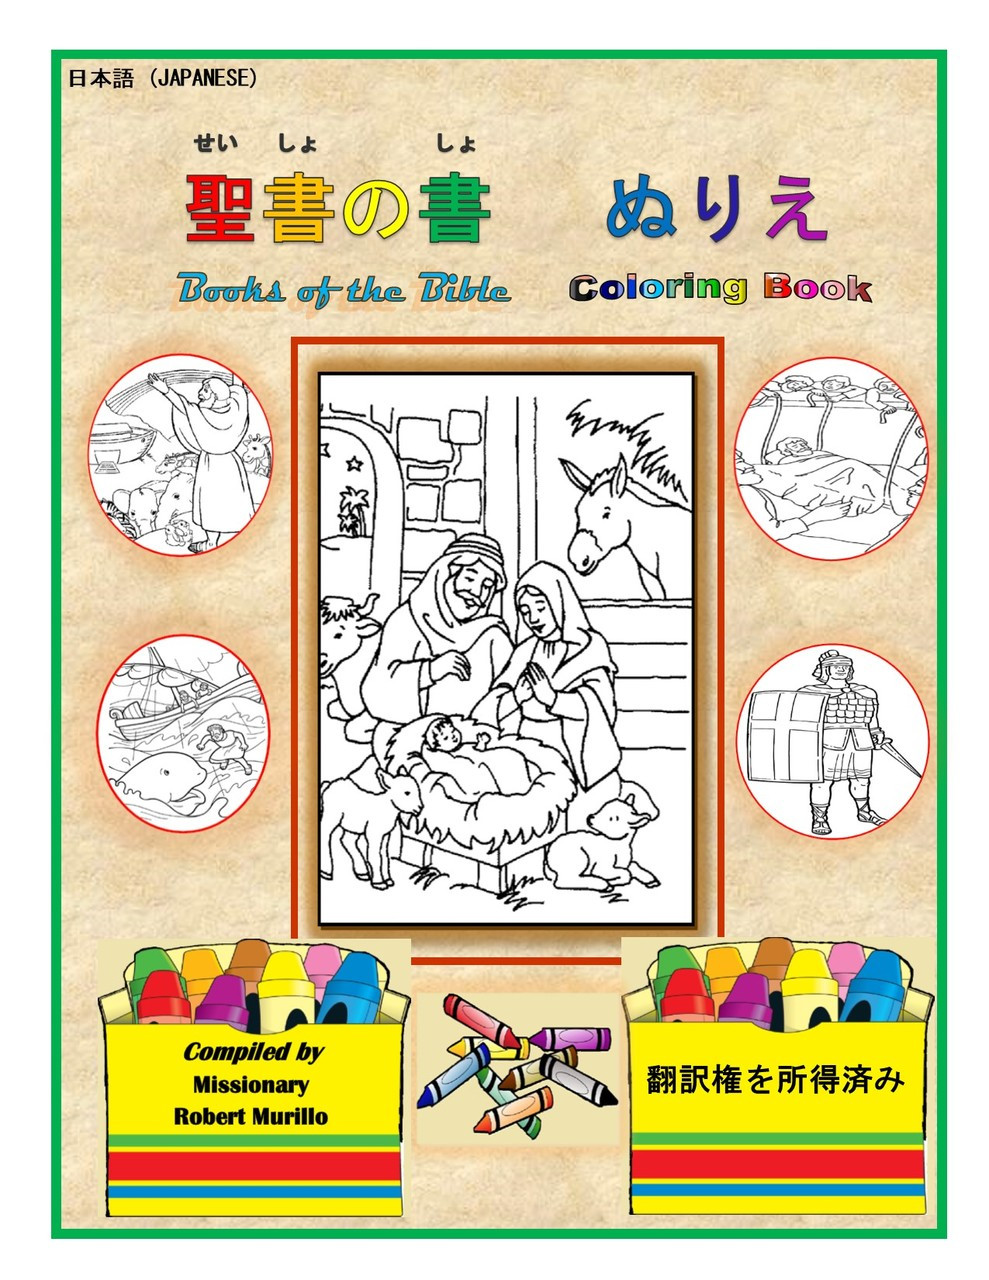 Books Of The Bible Coloring Book Japanese (66 Pages) - LAMB